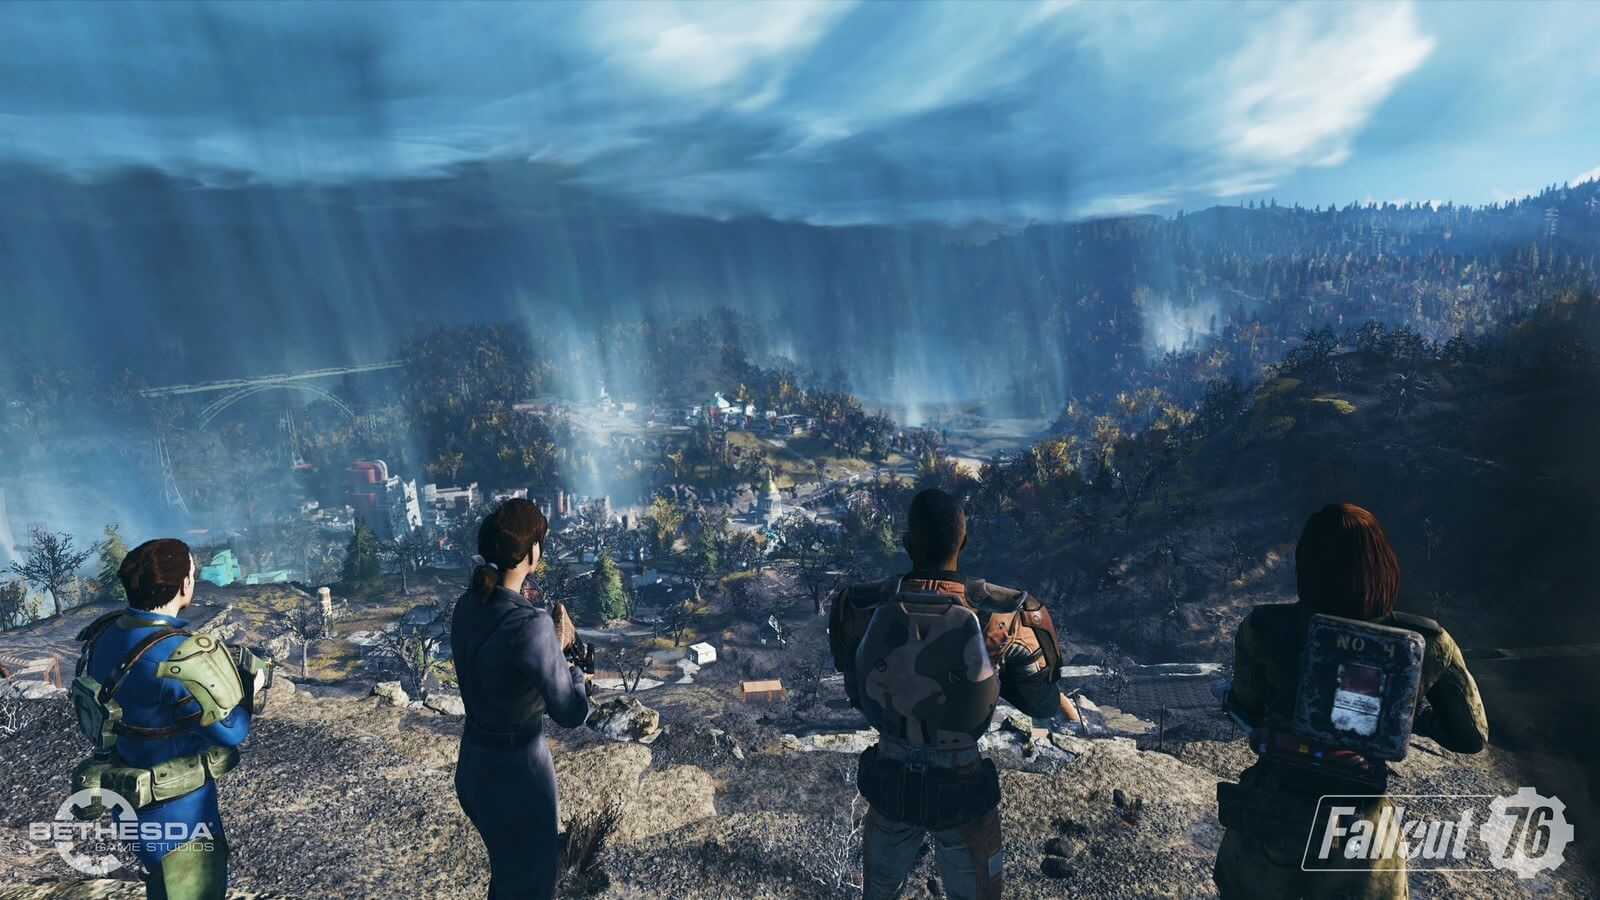 Here's What Happens if You Grief Players in Fallout 76